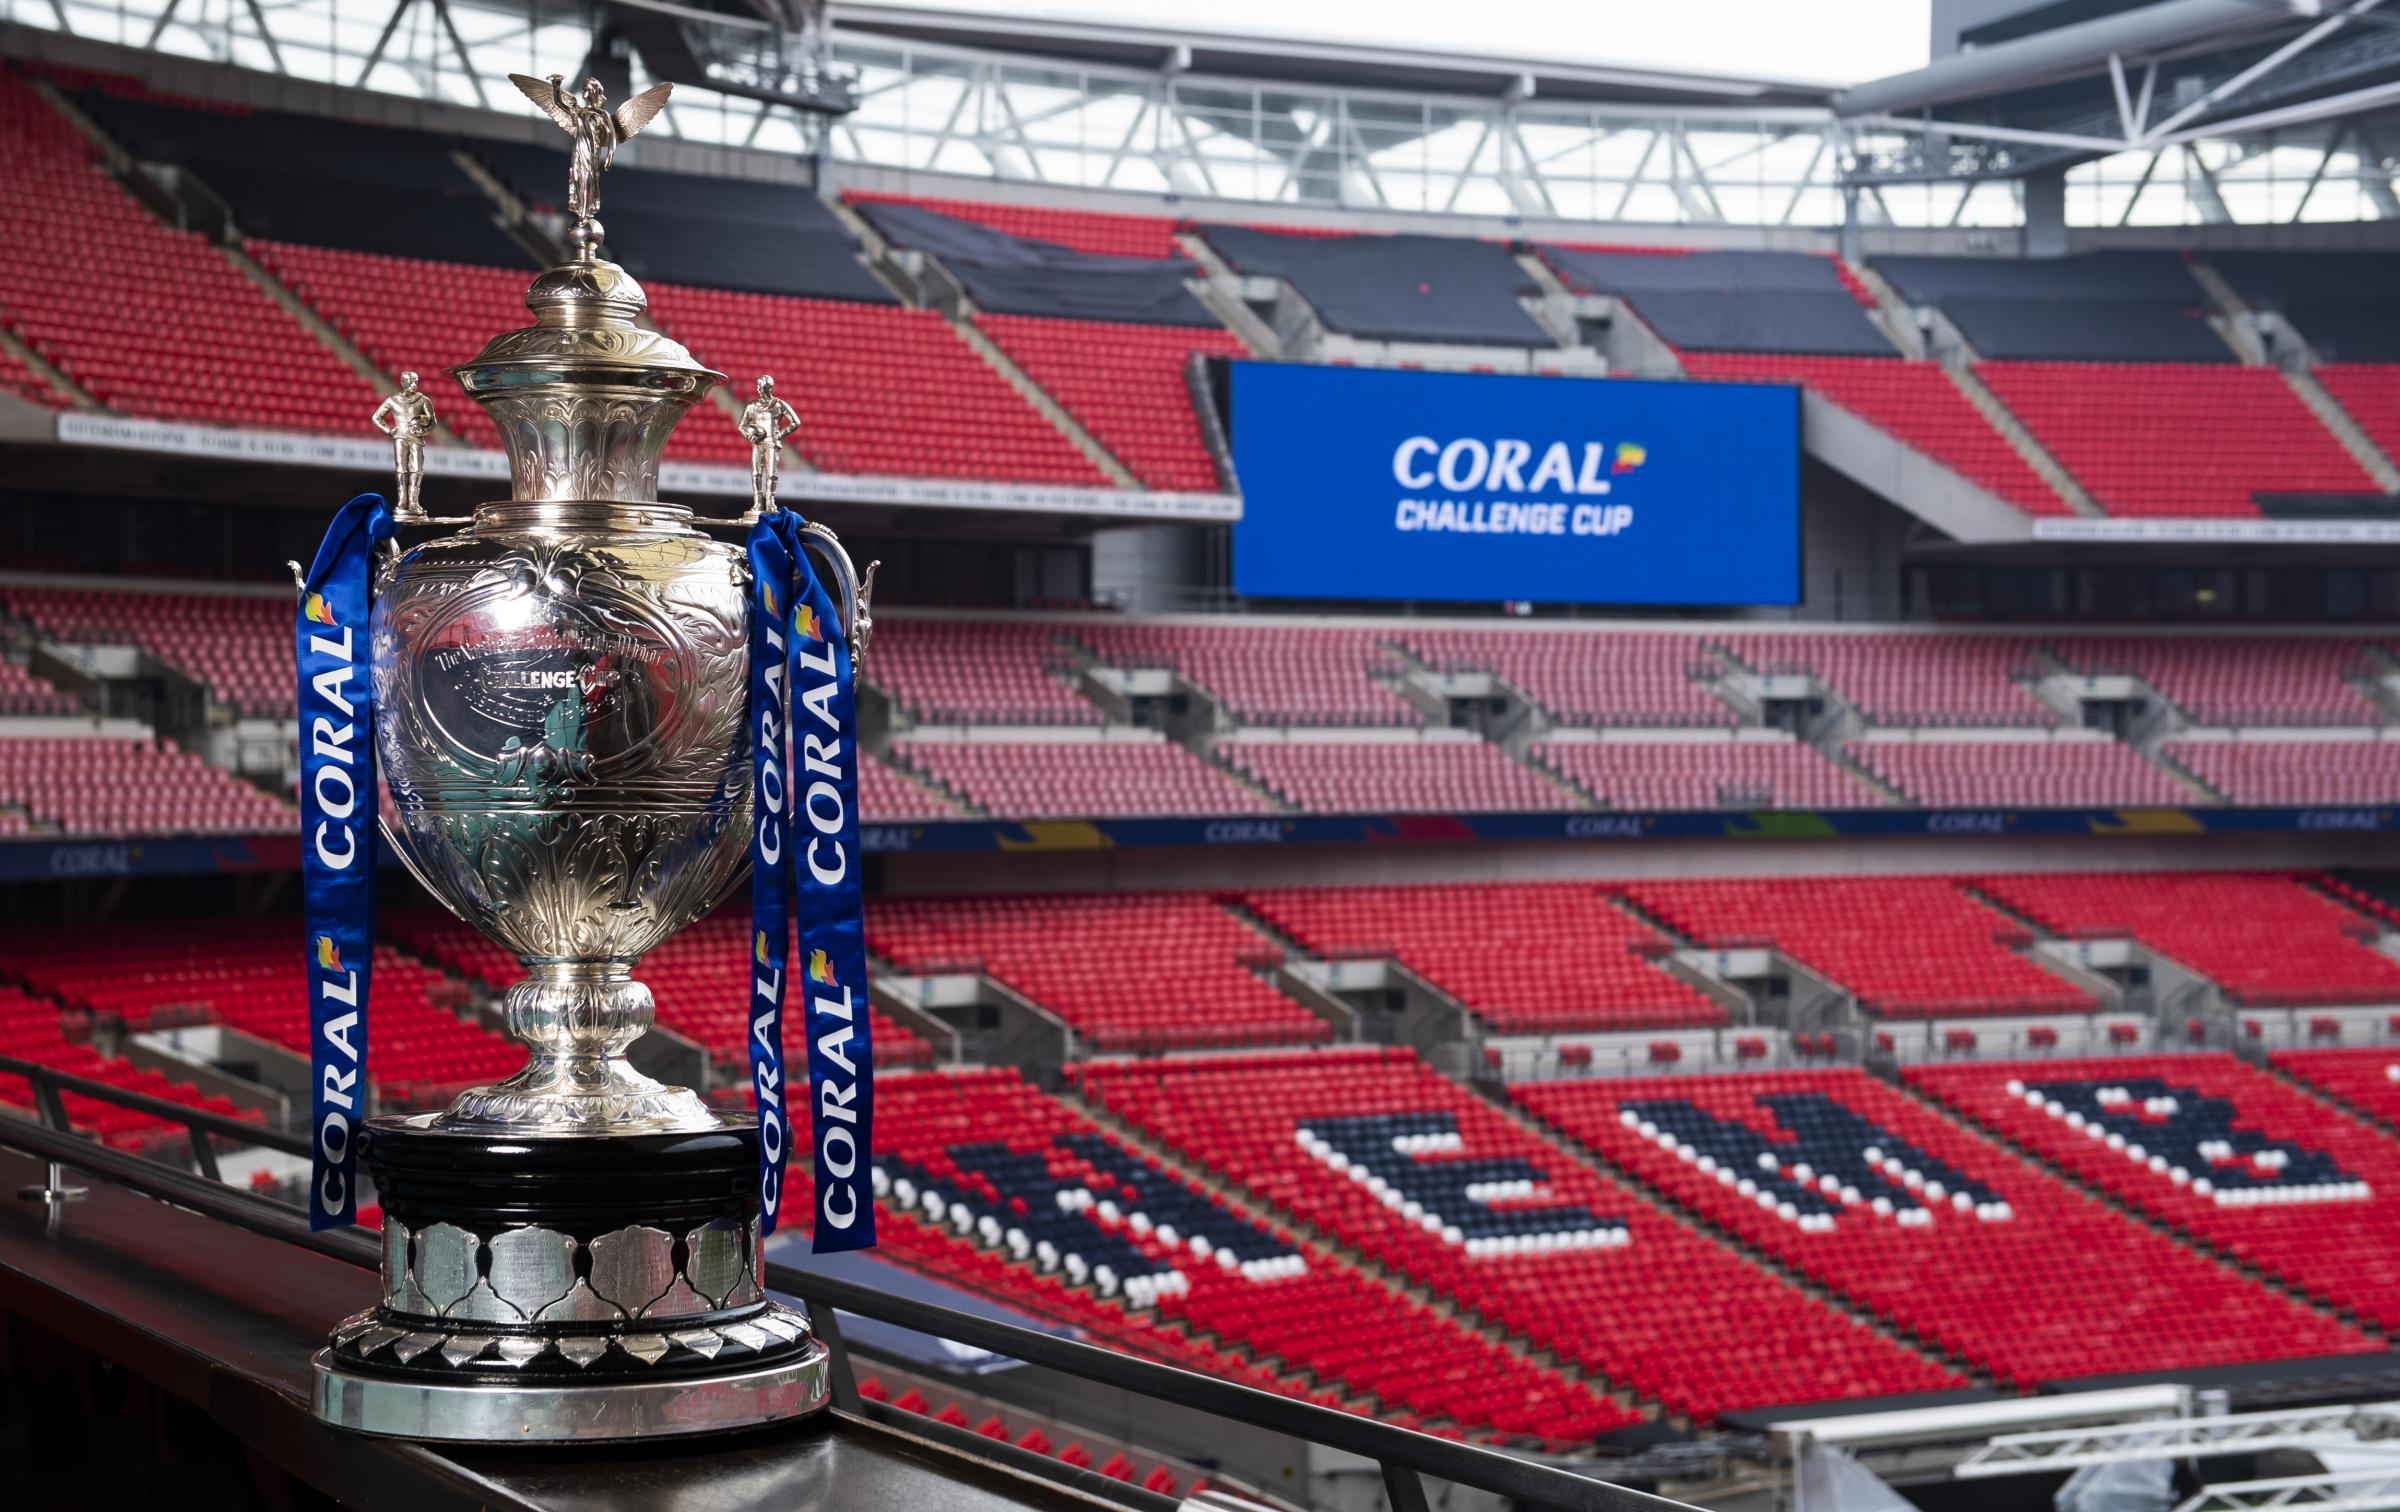 The Challenge Cup has a new sponsor in bookmaker Coral